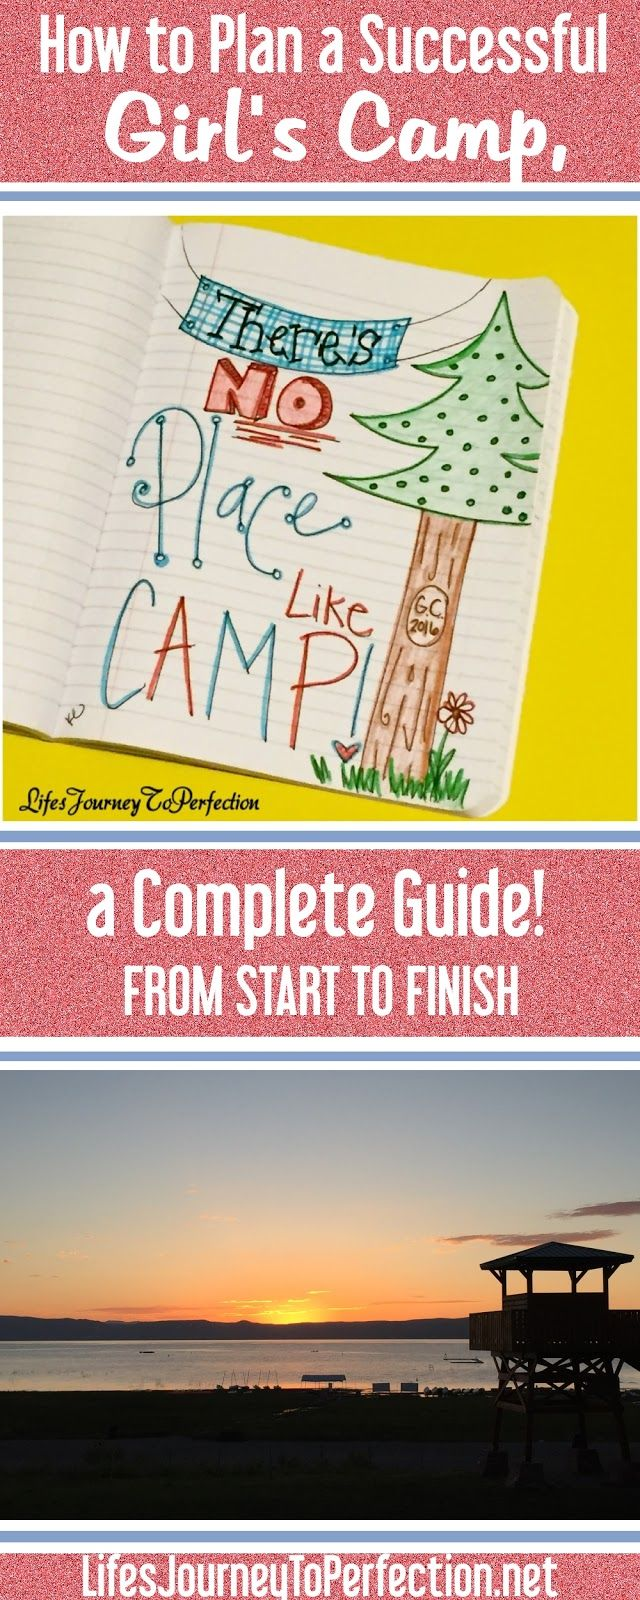 How to Plan a Successful Girl's Camp, a Complete Guide...